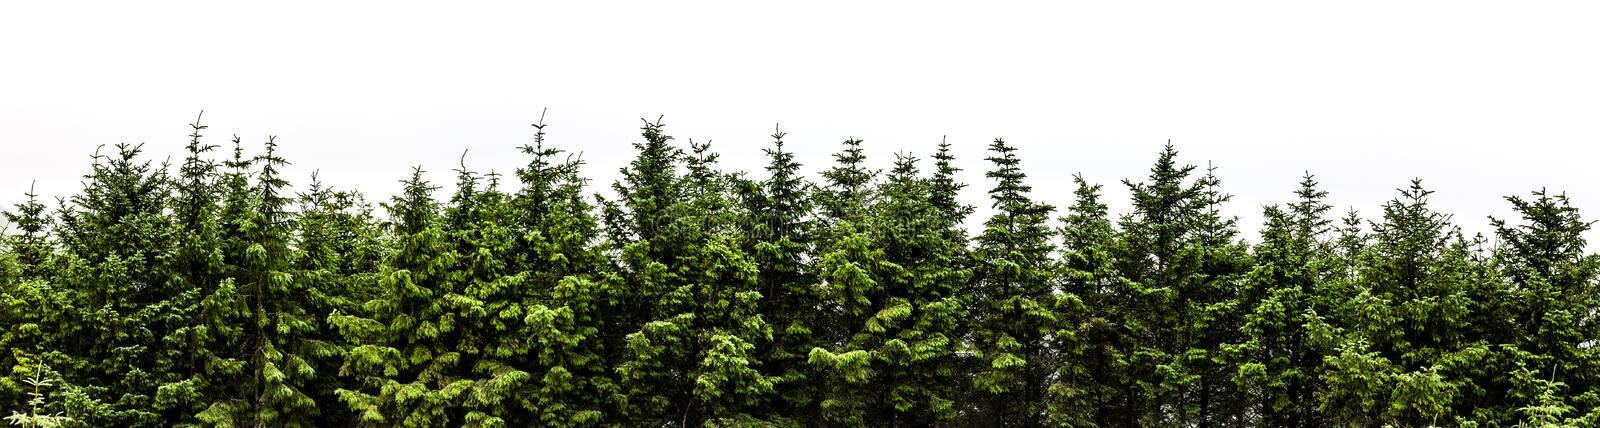 Fir forest panorama isolated on white background stock photos